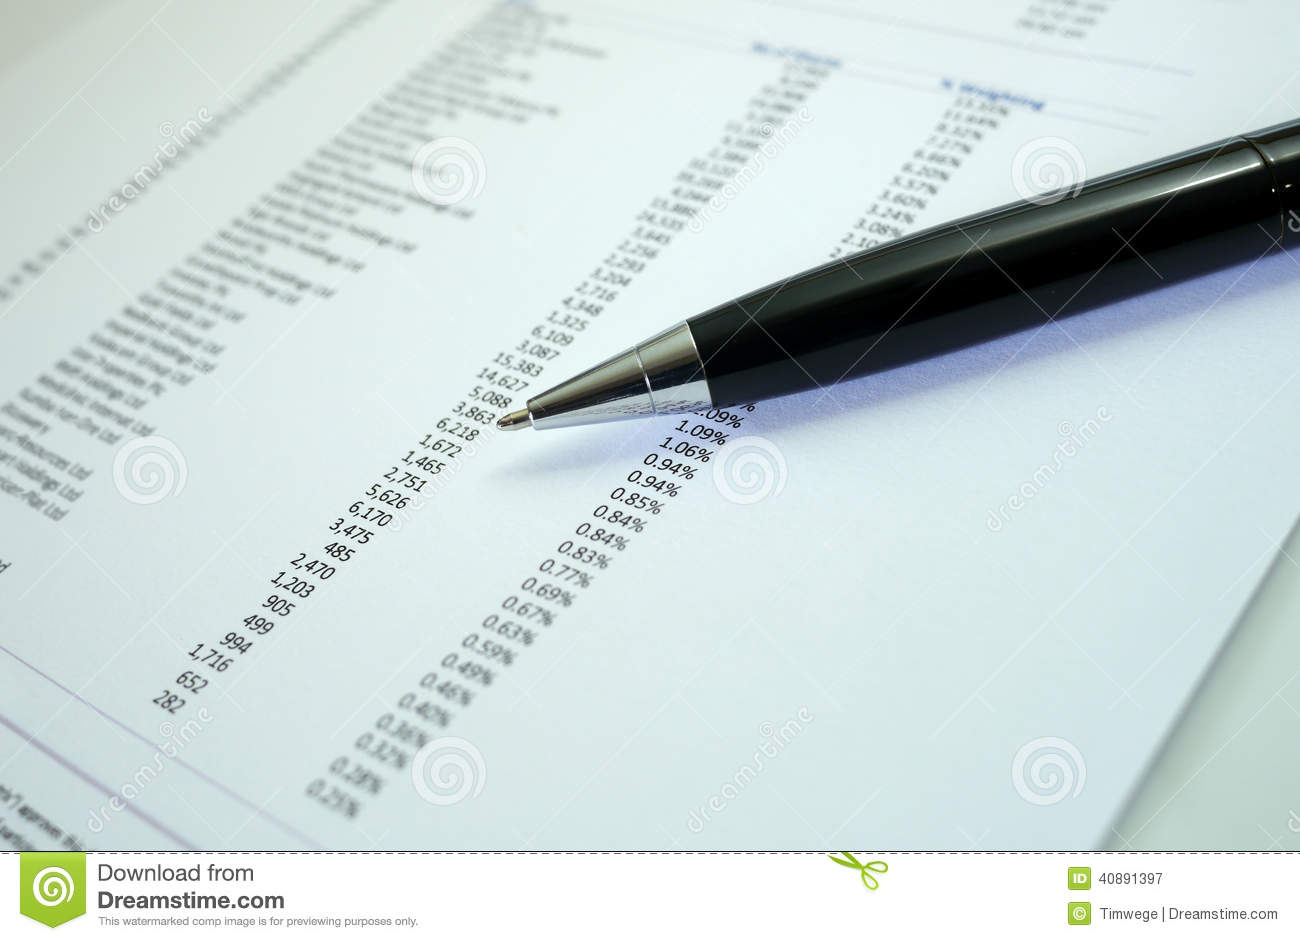 Pen and graph on financial figures